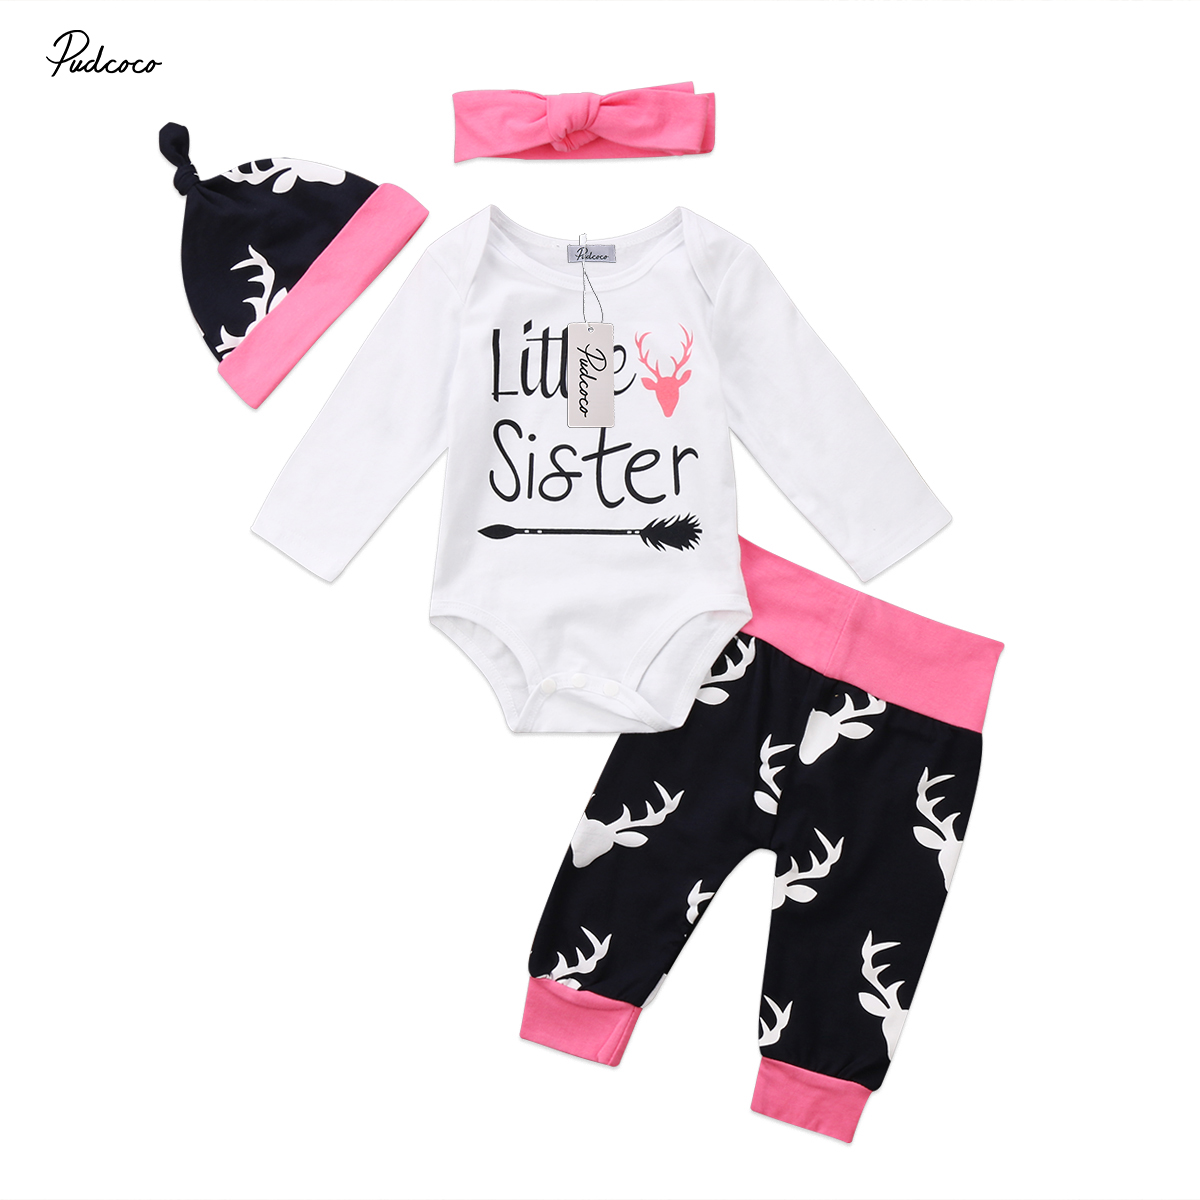 Cute Little Sister 4pcs Deer Outfits Infant Baby Girl Print Clothing Sets Cotton Romper Long Pants Hats Clothes Set 0-18M